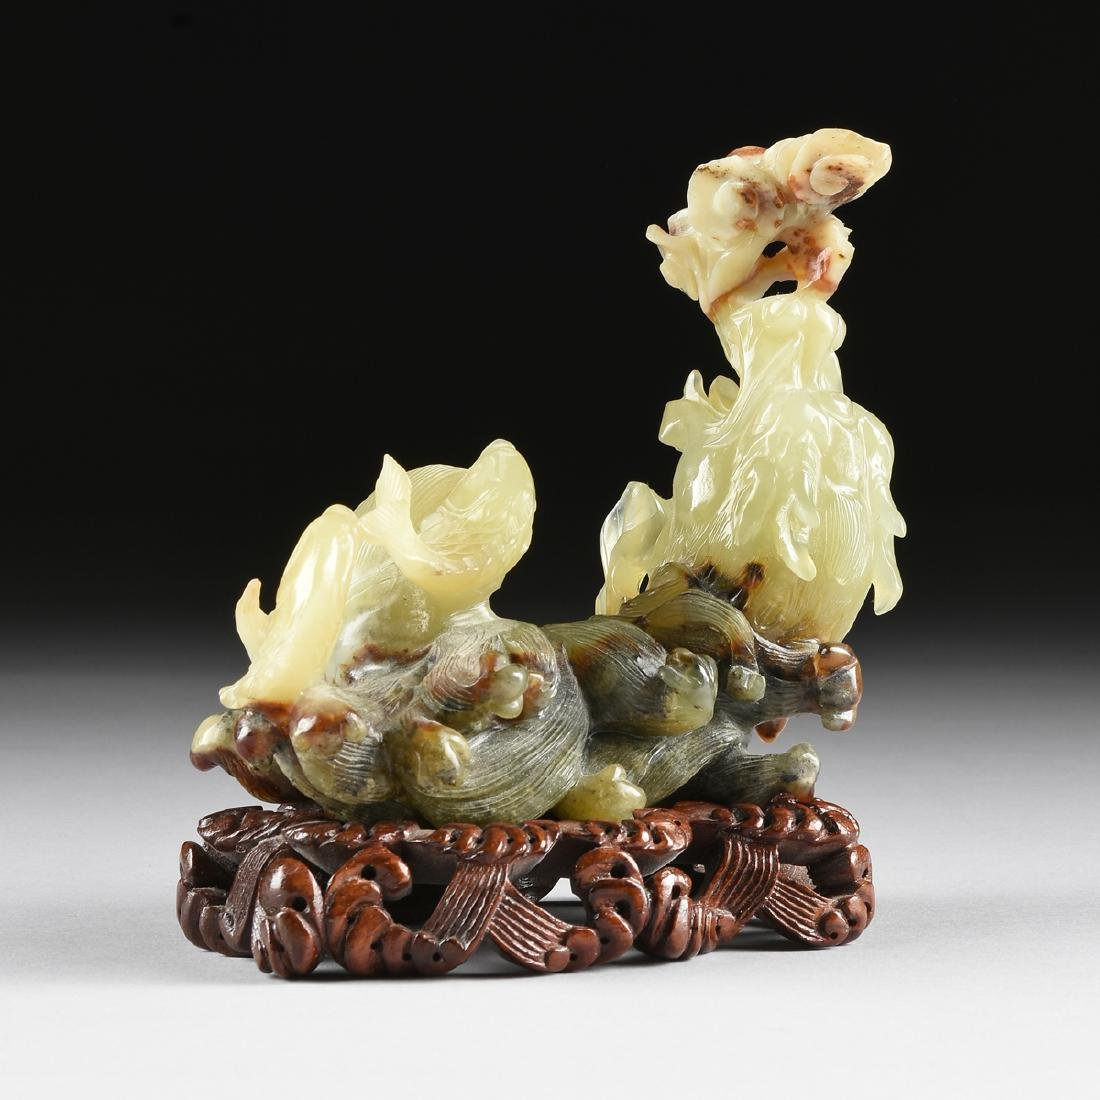 A CHINESE CELADON JADE SEA DRAGON AND FISH GROUP,